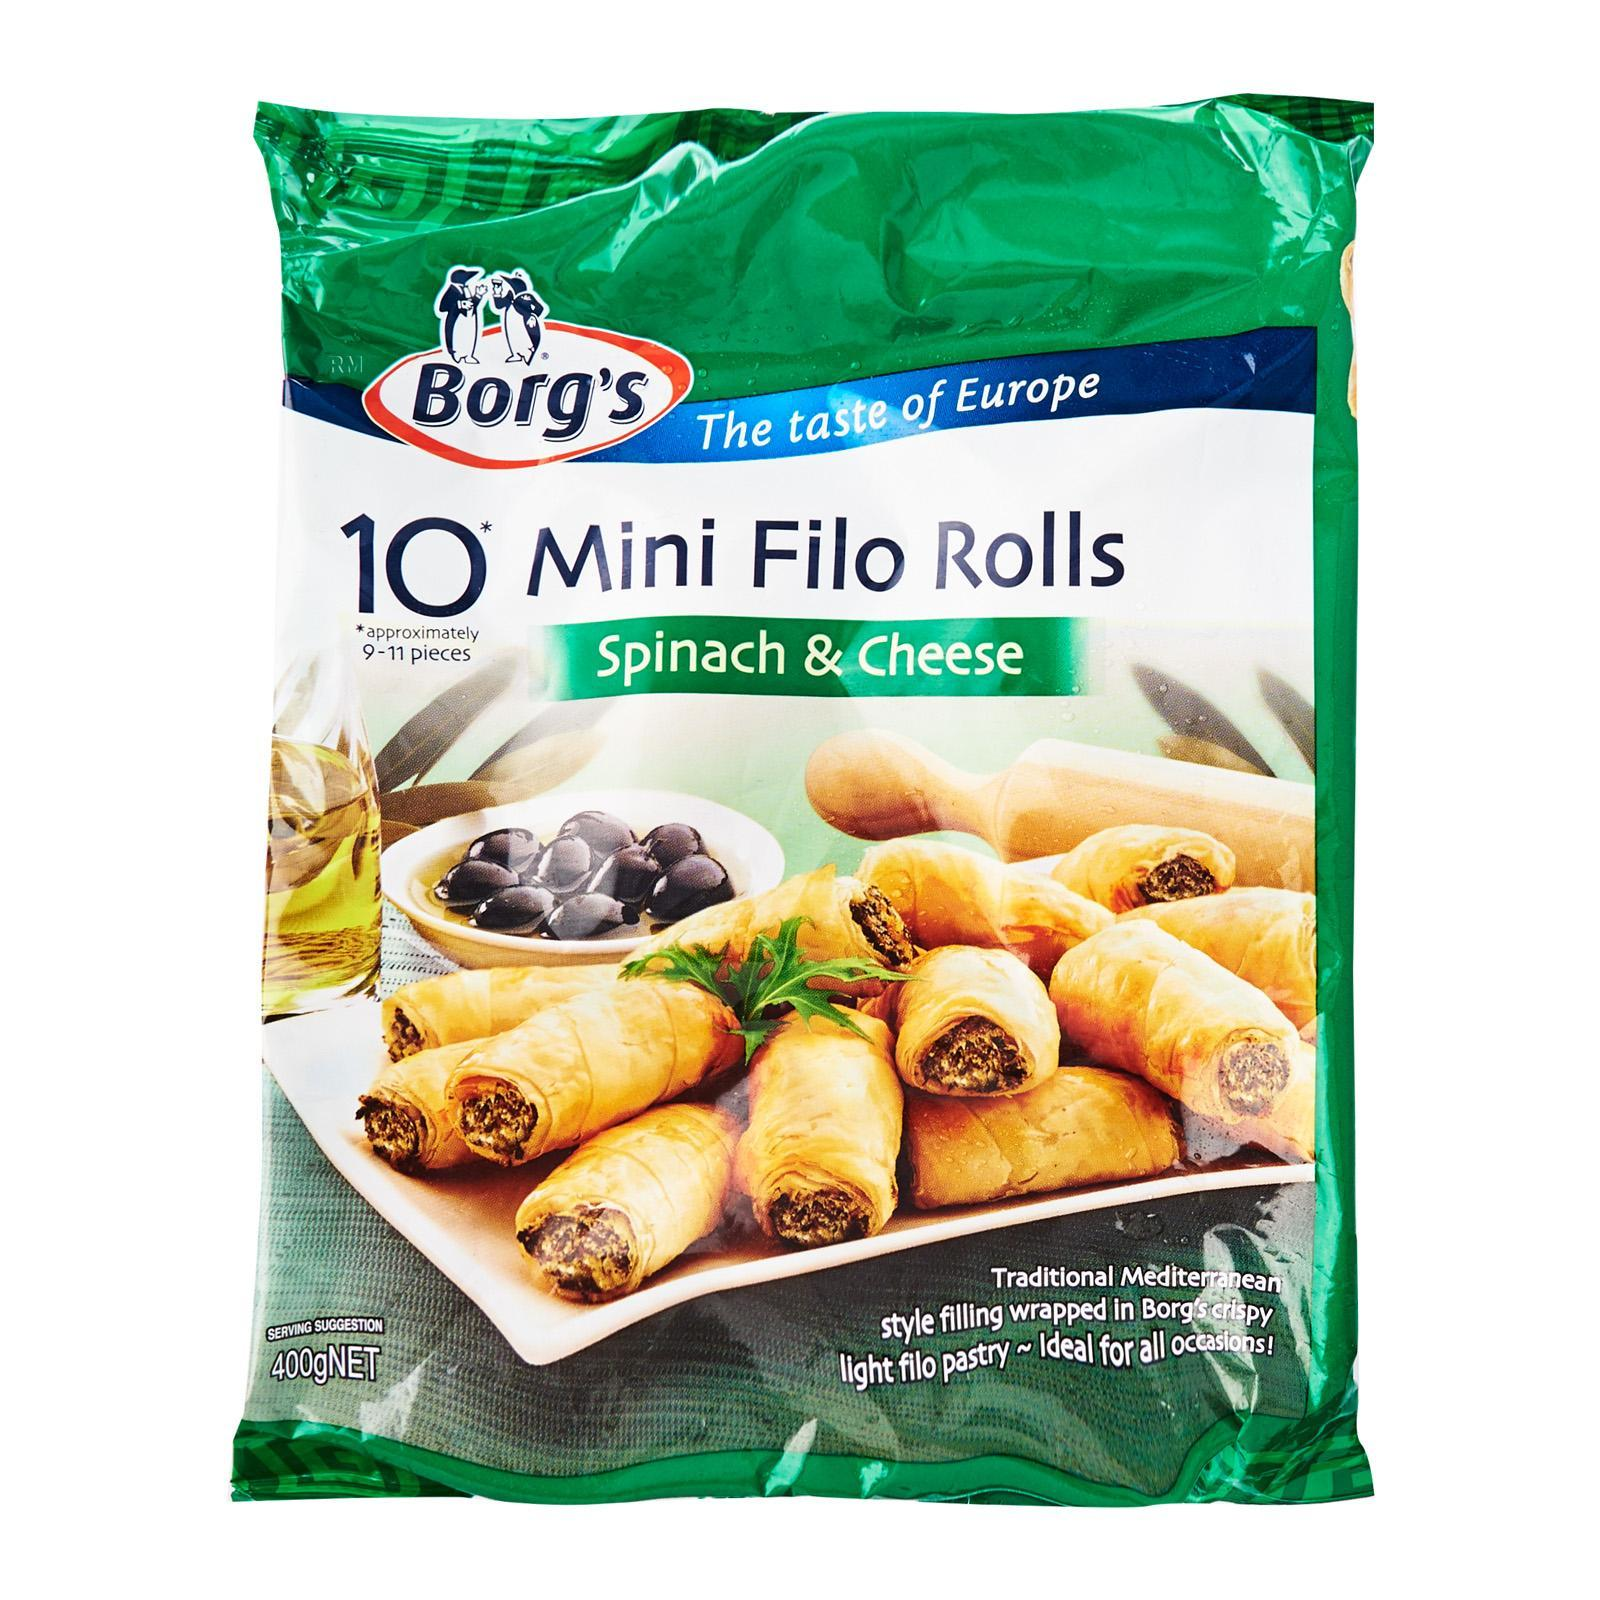 BORG'S Mini Filo Rolls - Spinach And Cheese 10s - Frozen